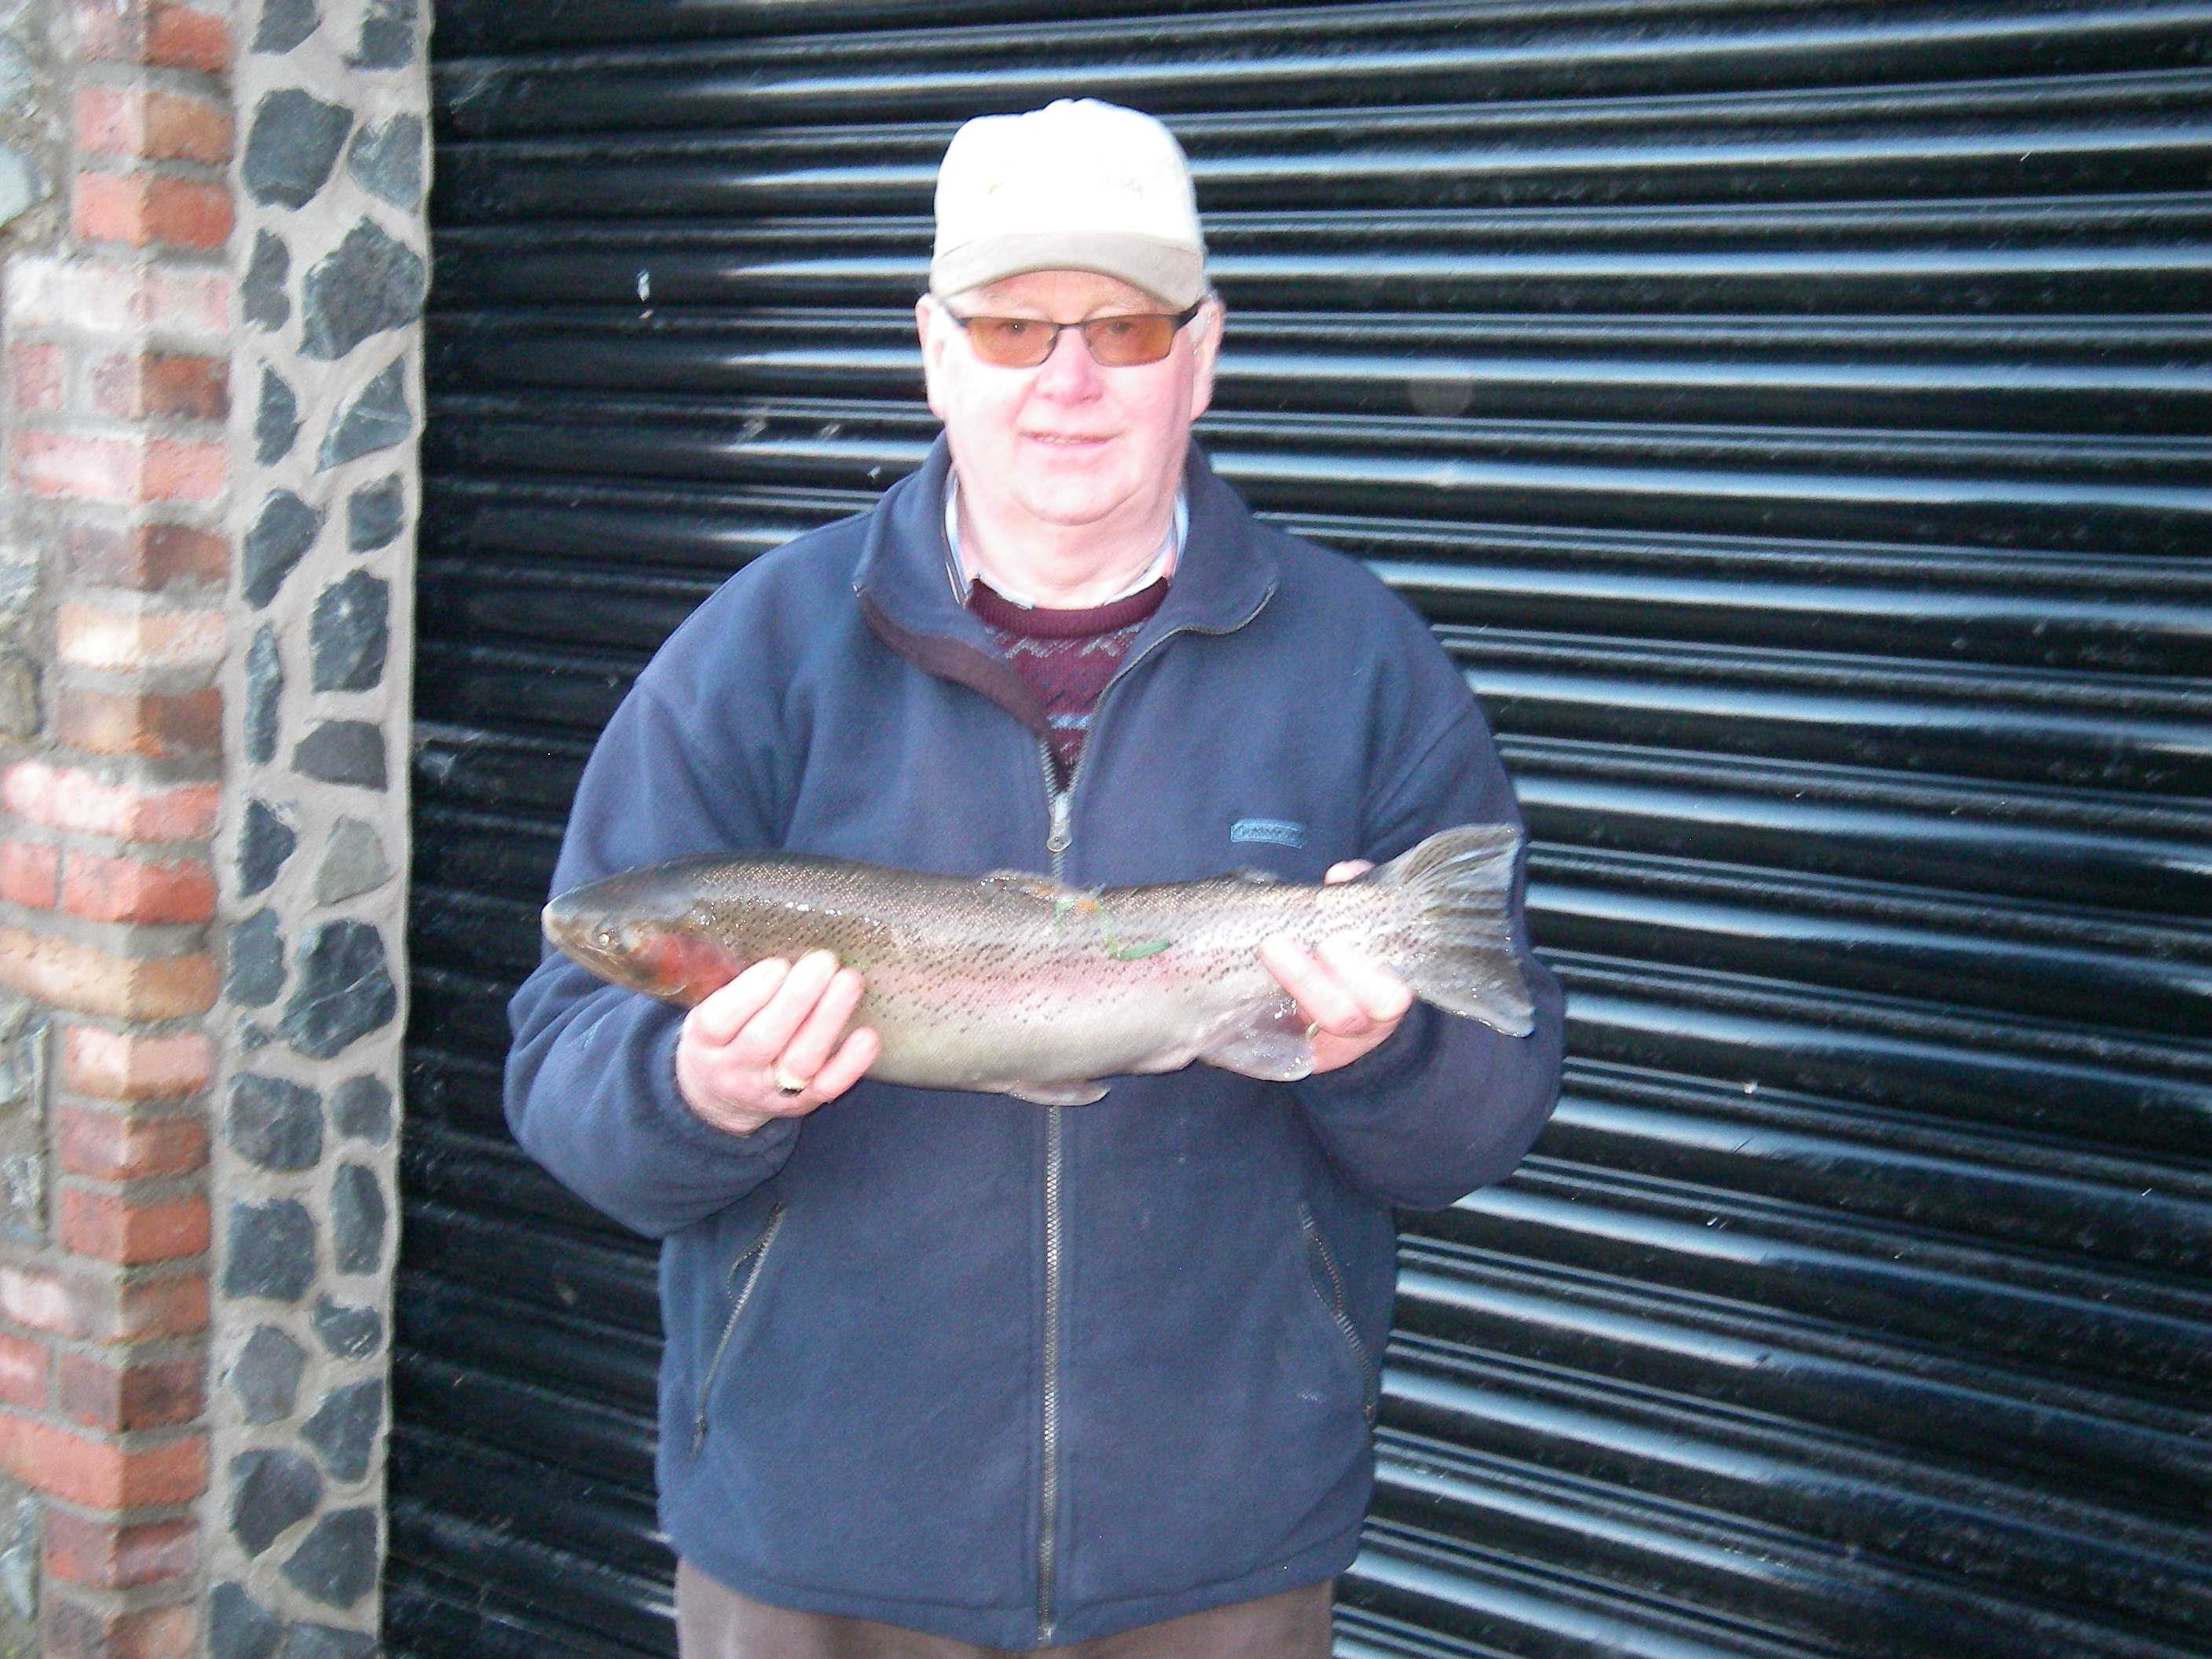 BAC Henry McKnight with a 4lbs 9ozs Rainbow Trout taken on the fly at Corbet Lough on 4 March 2017